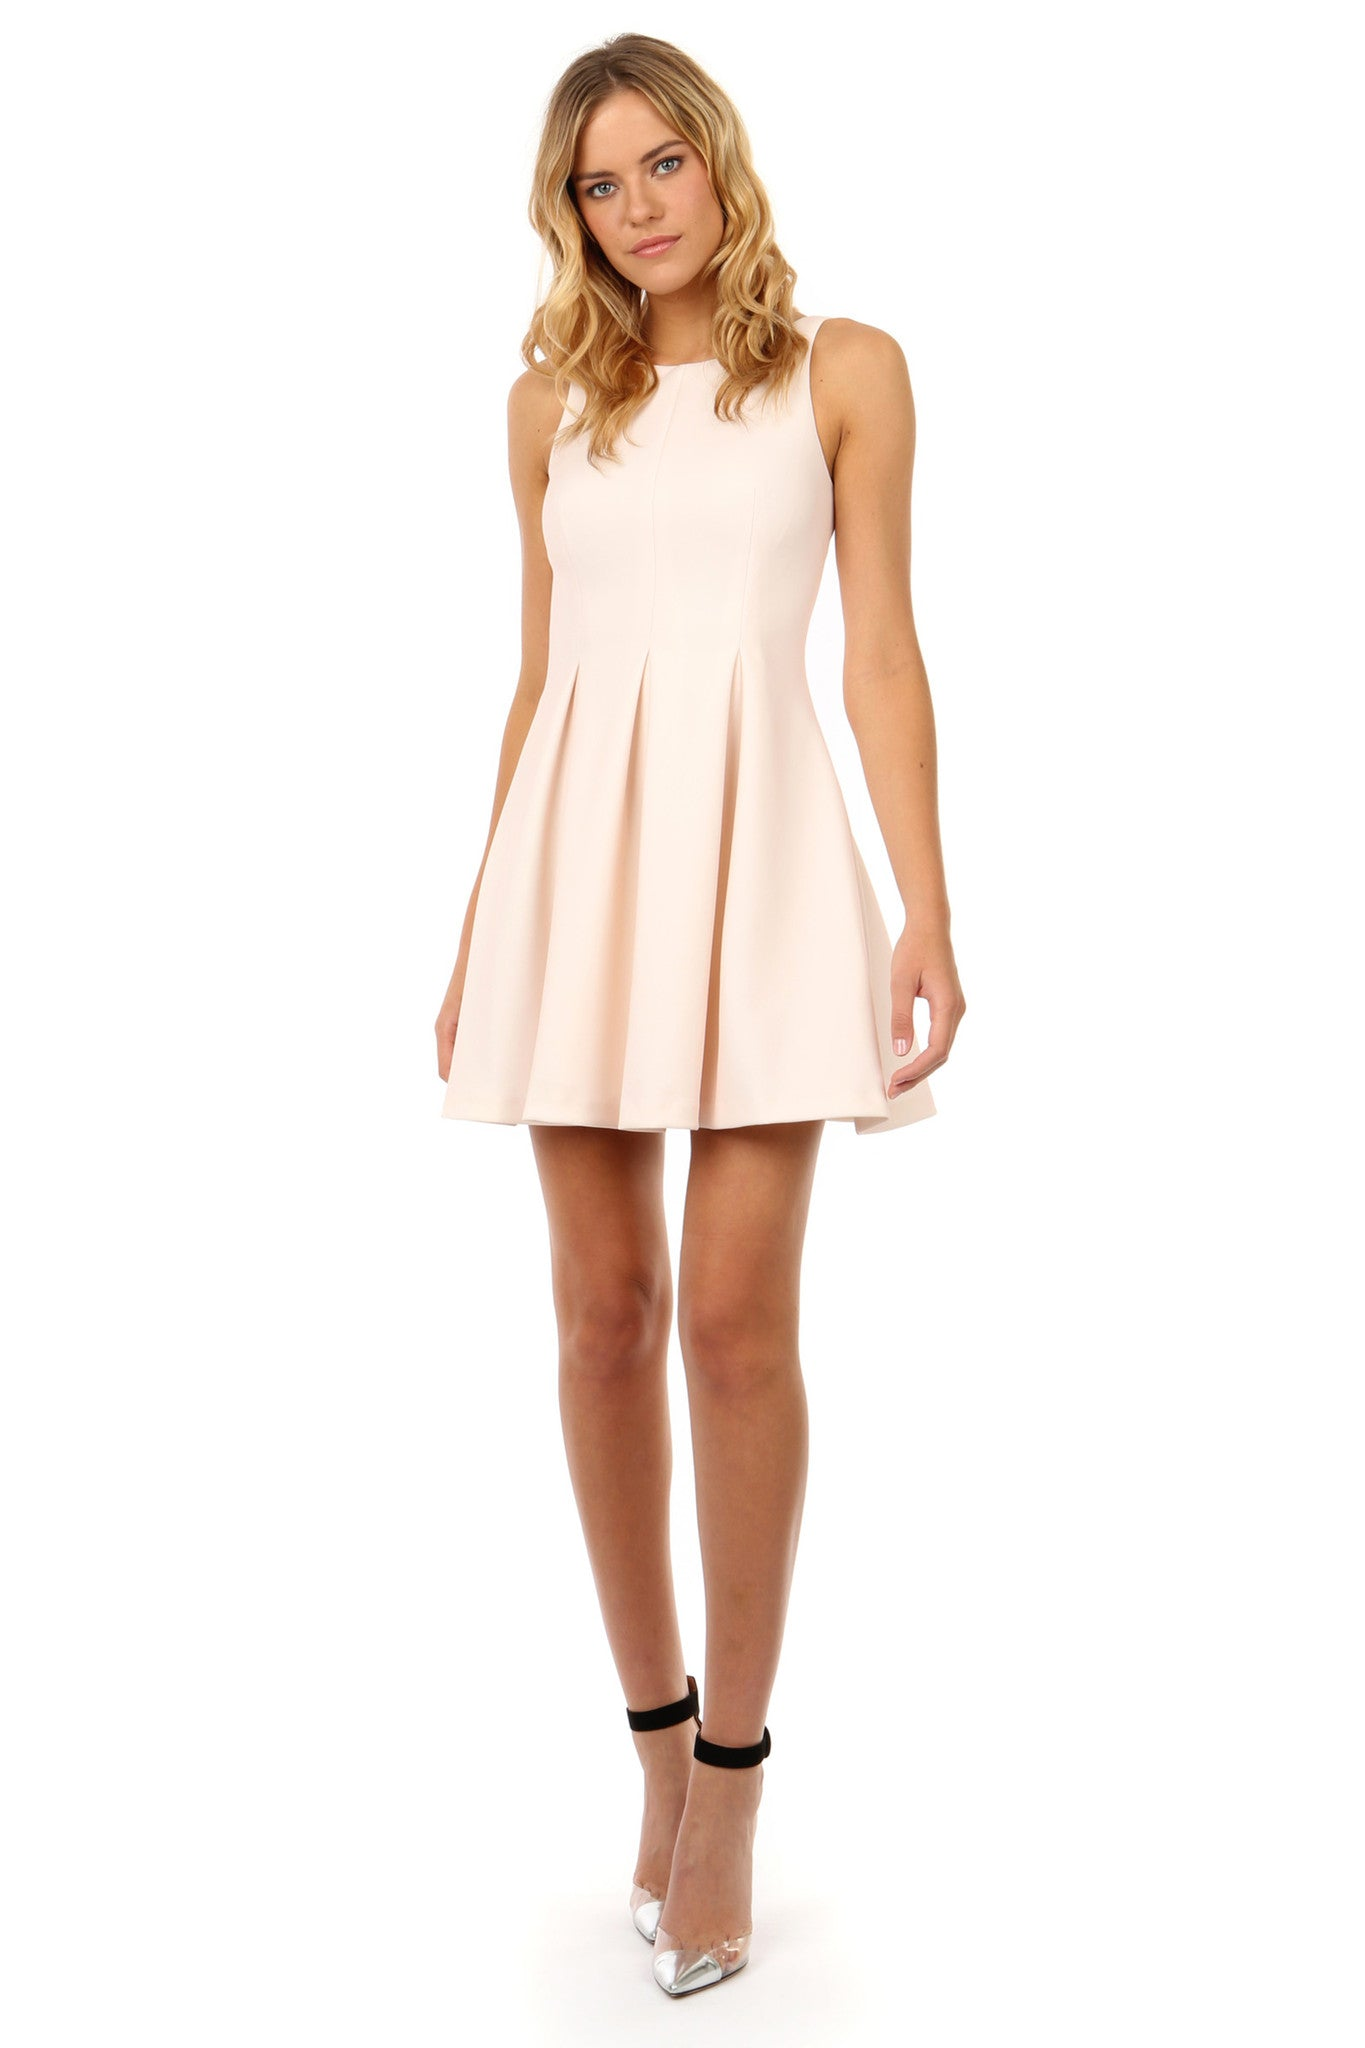 Jay Godfrey Blush Pink Fit and Flare Dress - Front View